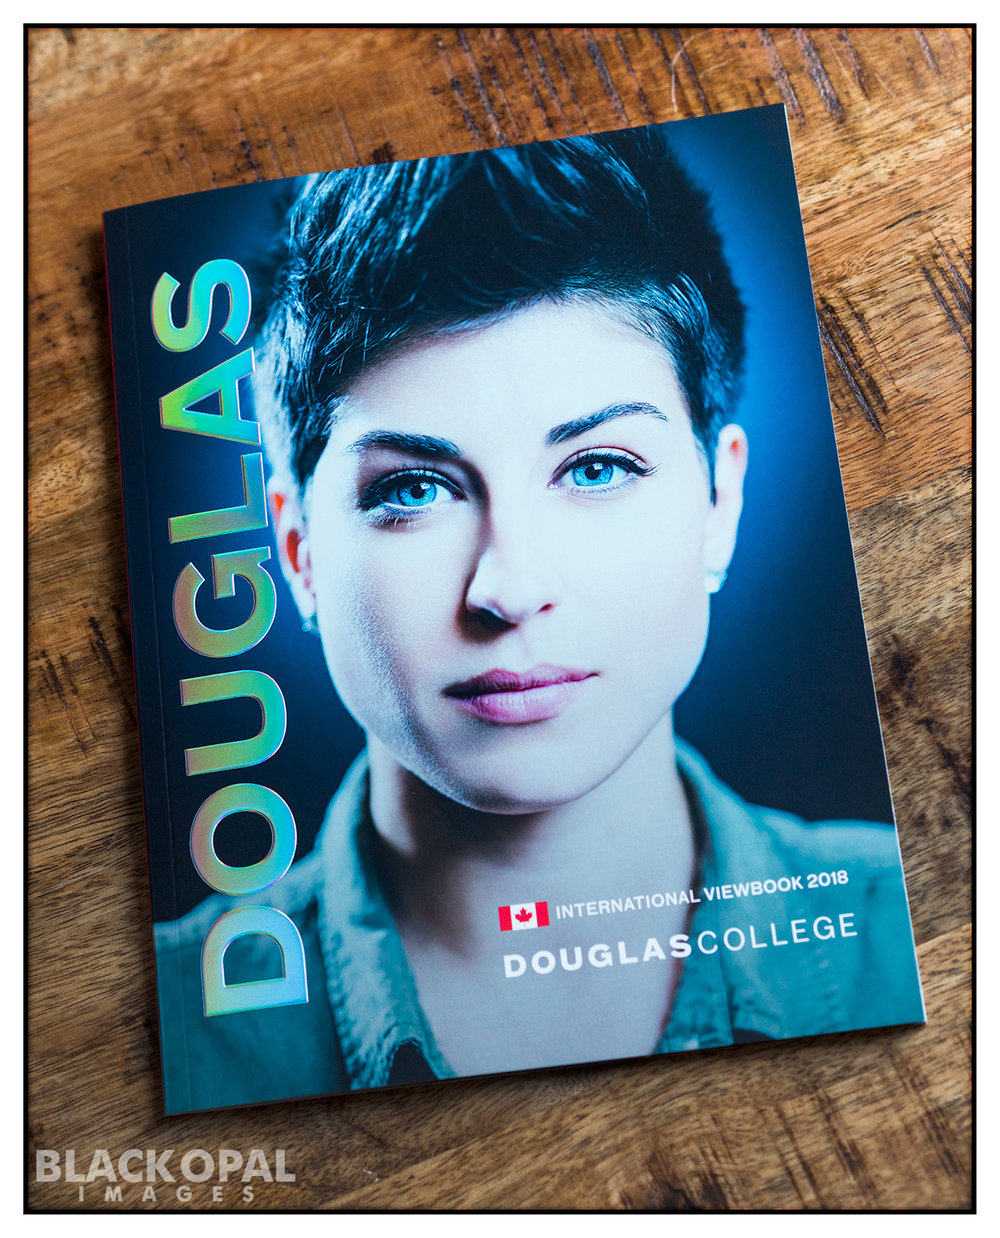 Douglas College International Viewbook cover photo - 2018